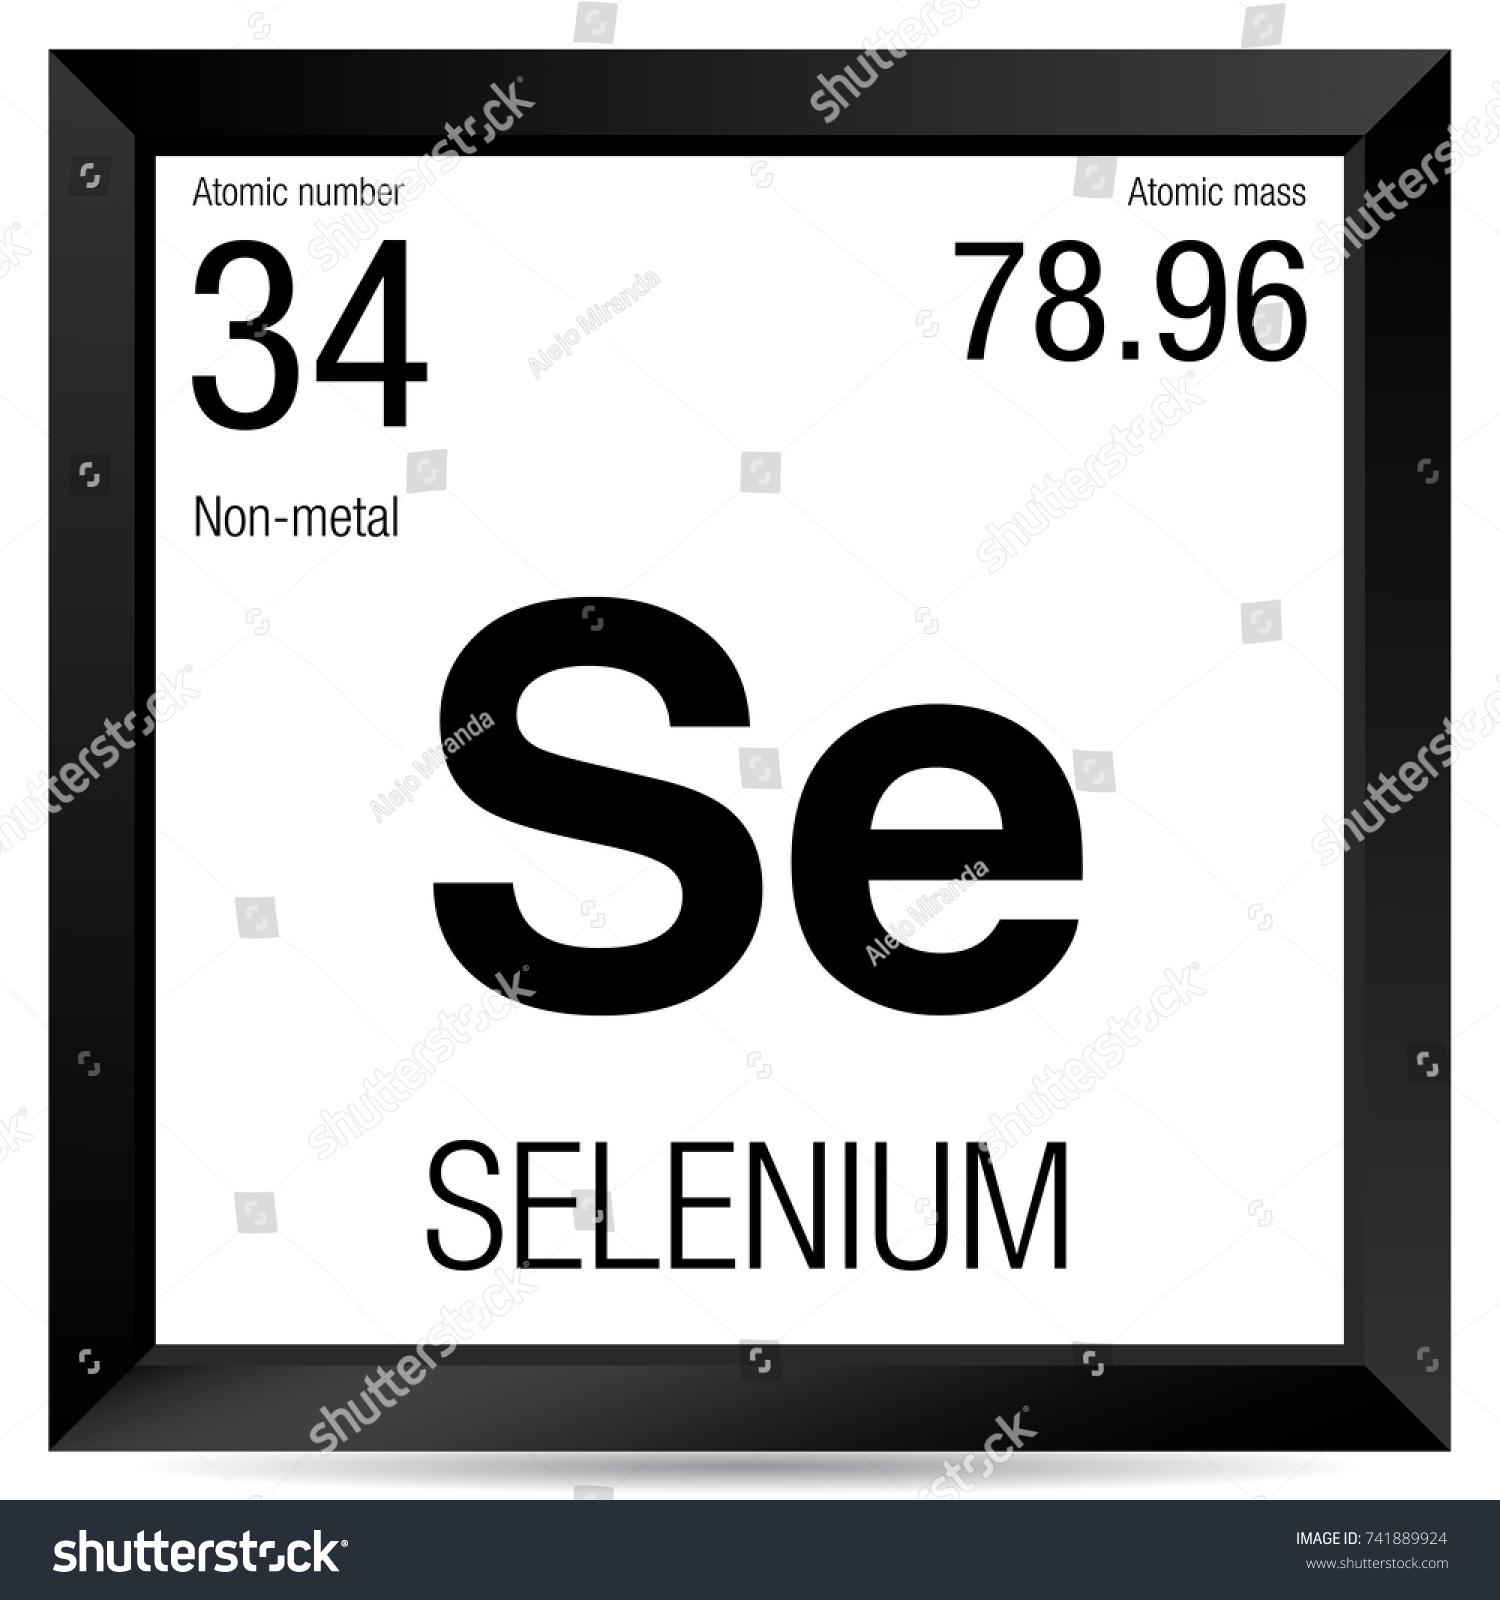 Selenium symbol element number 34 periodic stock vector 741889924 selenium symbol element number 34 of the periodic table of the elements chemistry gamestrikefo Images